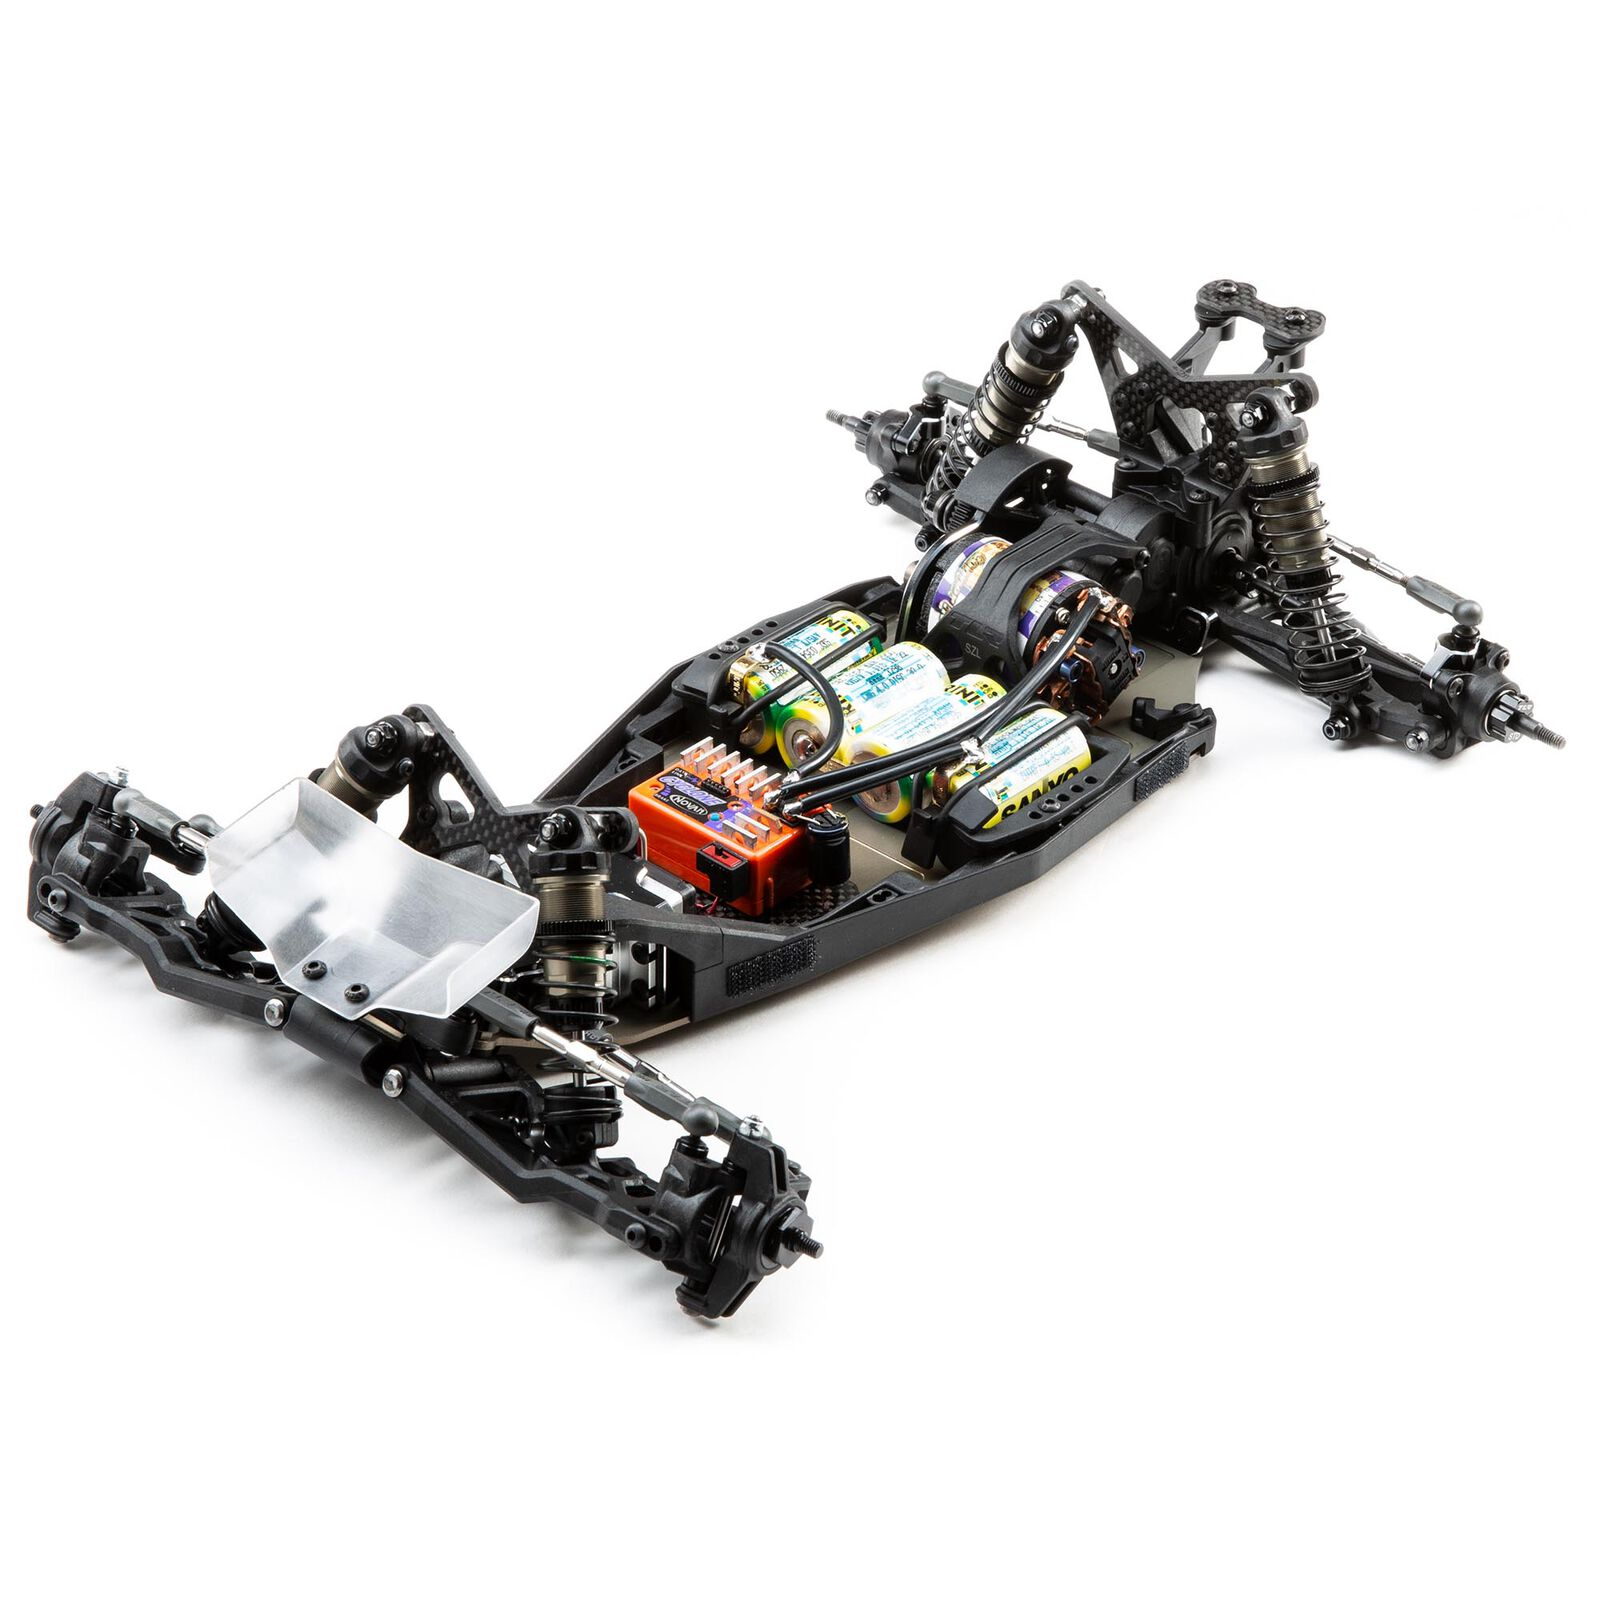 1/10 22 5.0 2WD DC ELITE Race Kit, Dirt/Clay